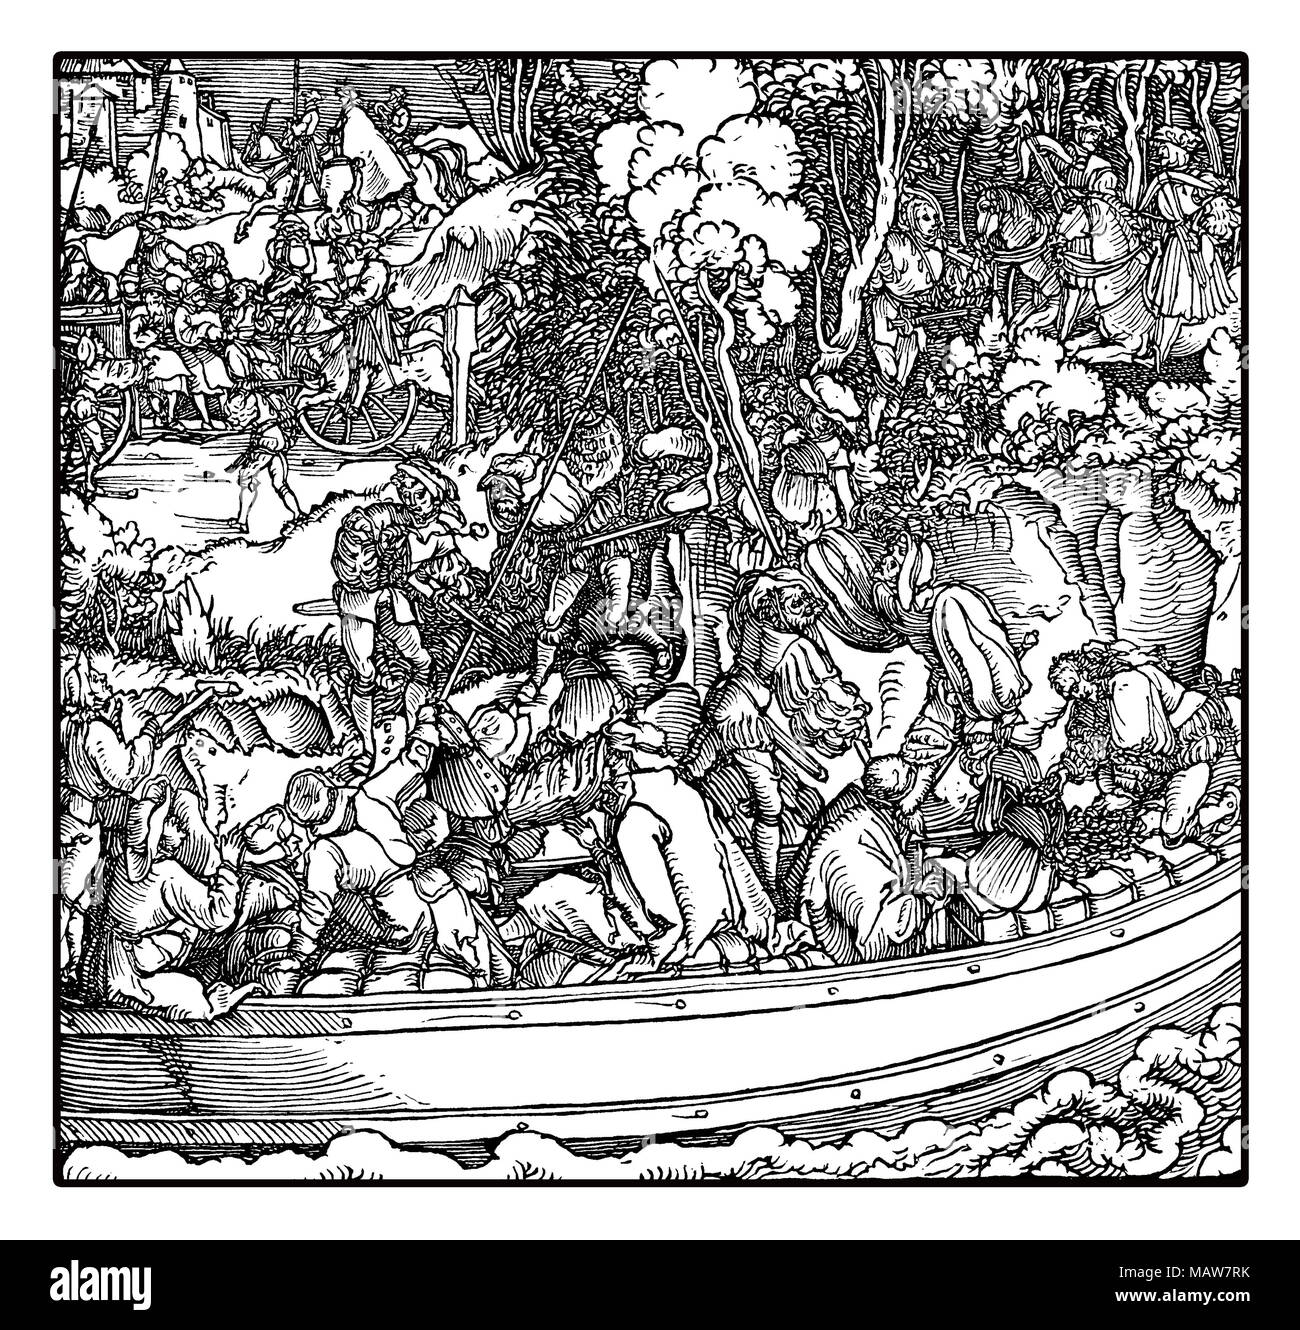 Robber barons tolling station: feudal landowners robbing travelers and merchants on river traffic, by Hans Schauffelein, year 1532 engraving - Stock Image